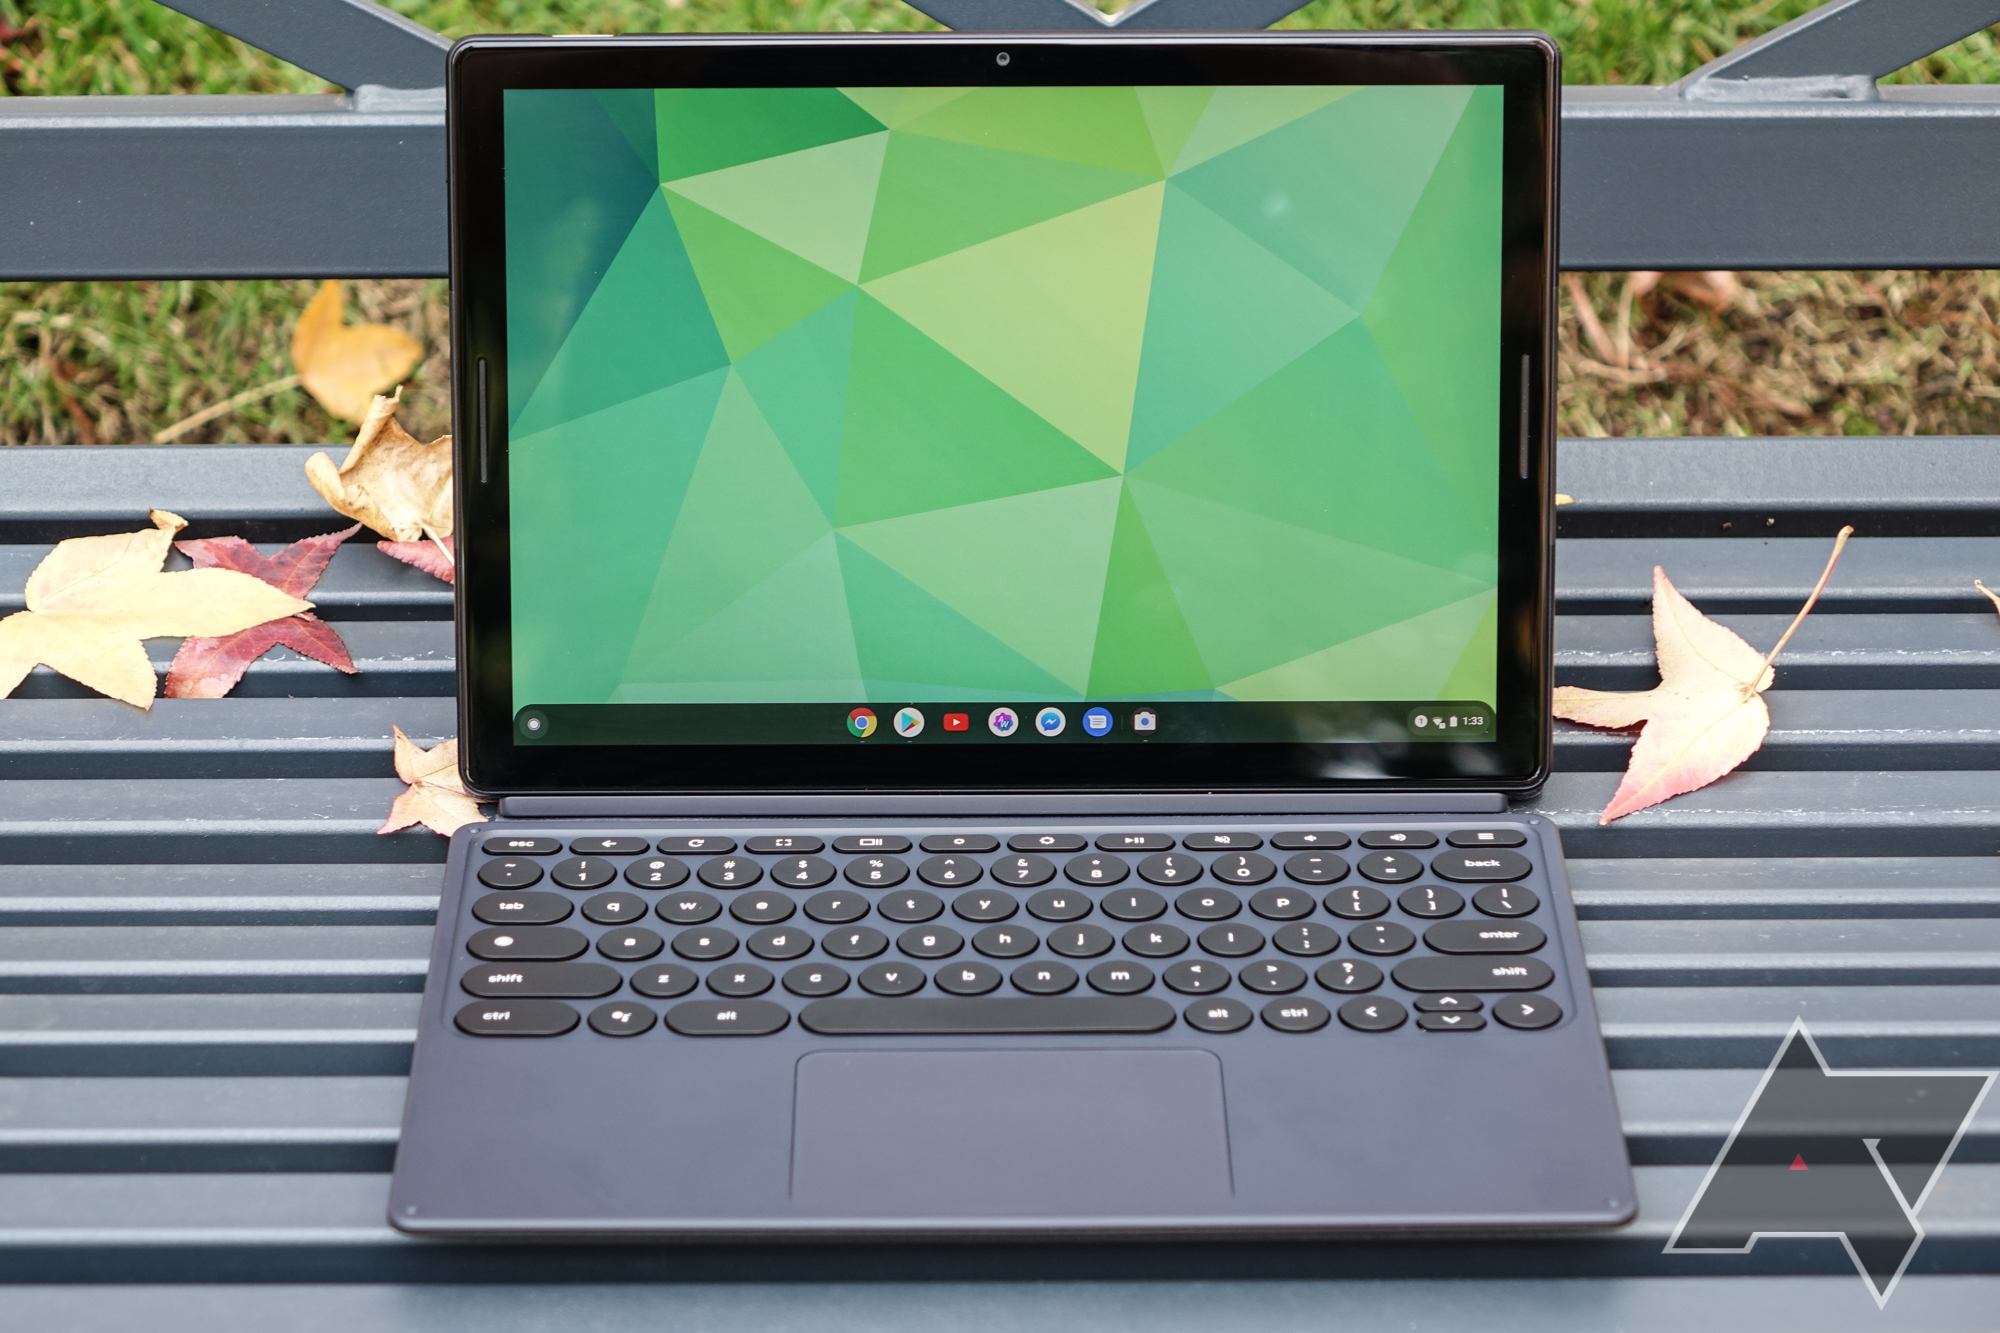 Opinion: Chrome OS is buggier and more poorly designed than ever